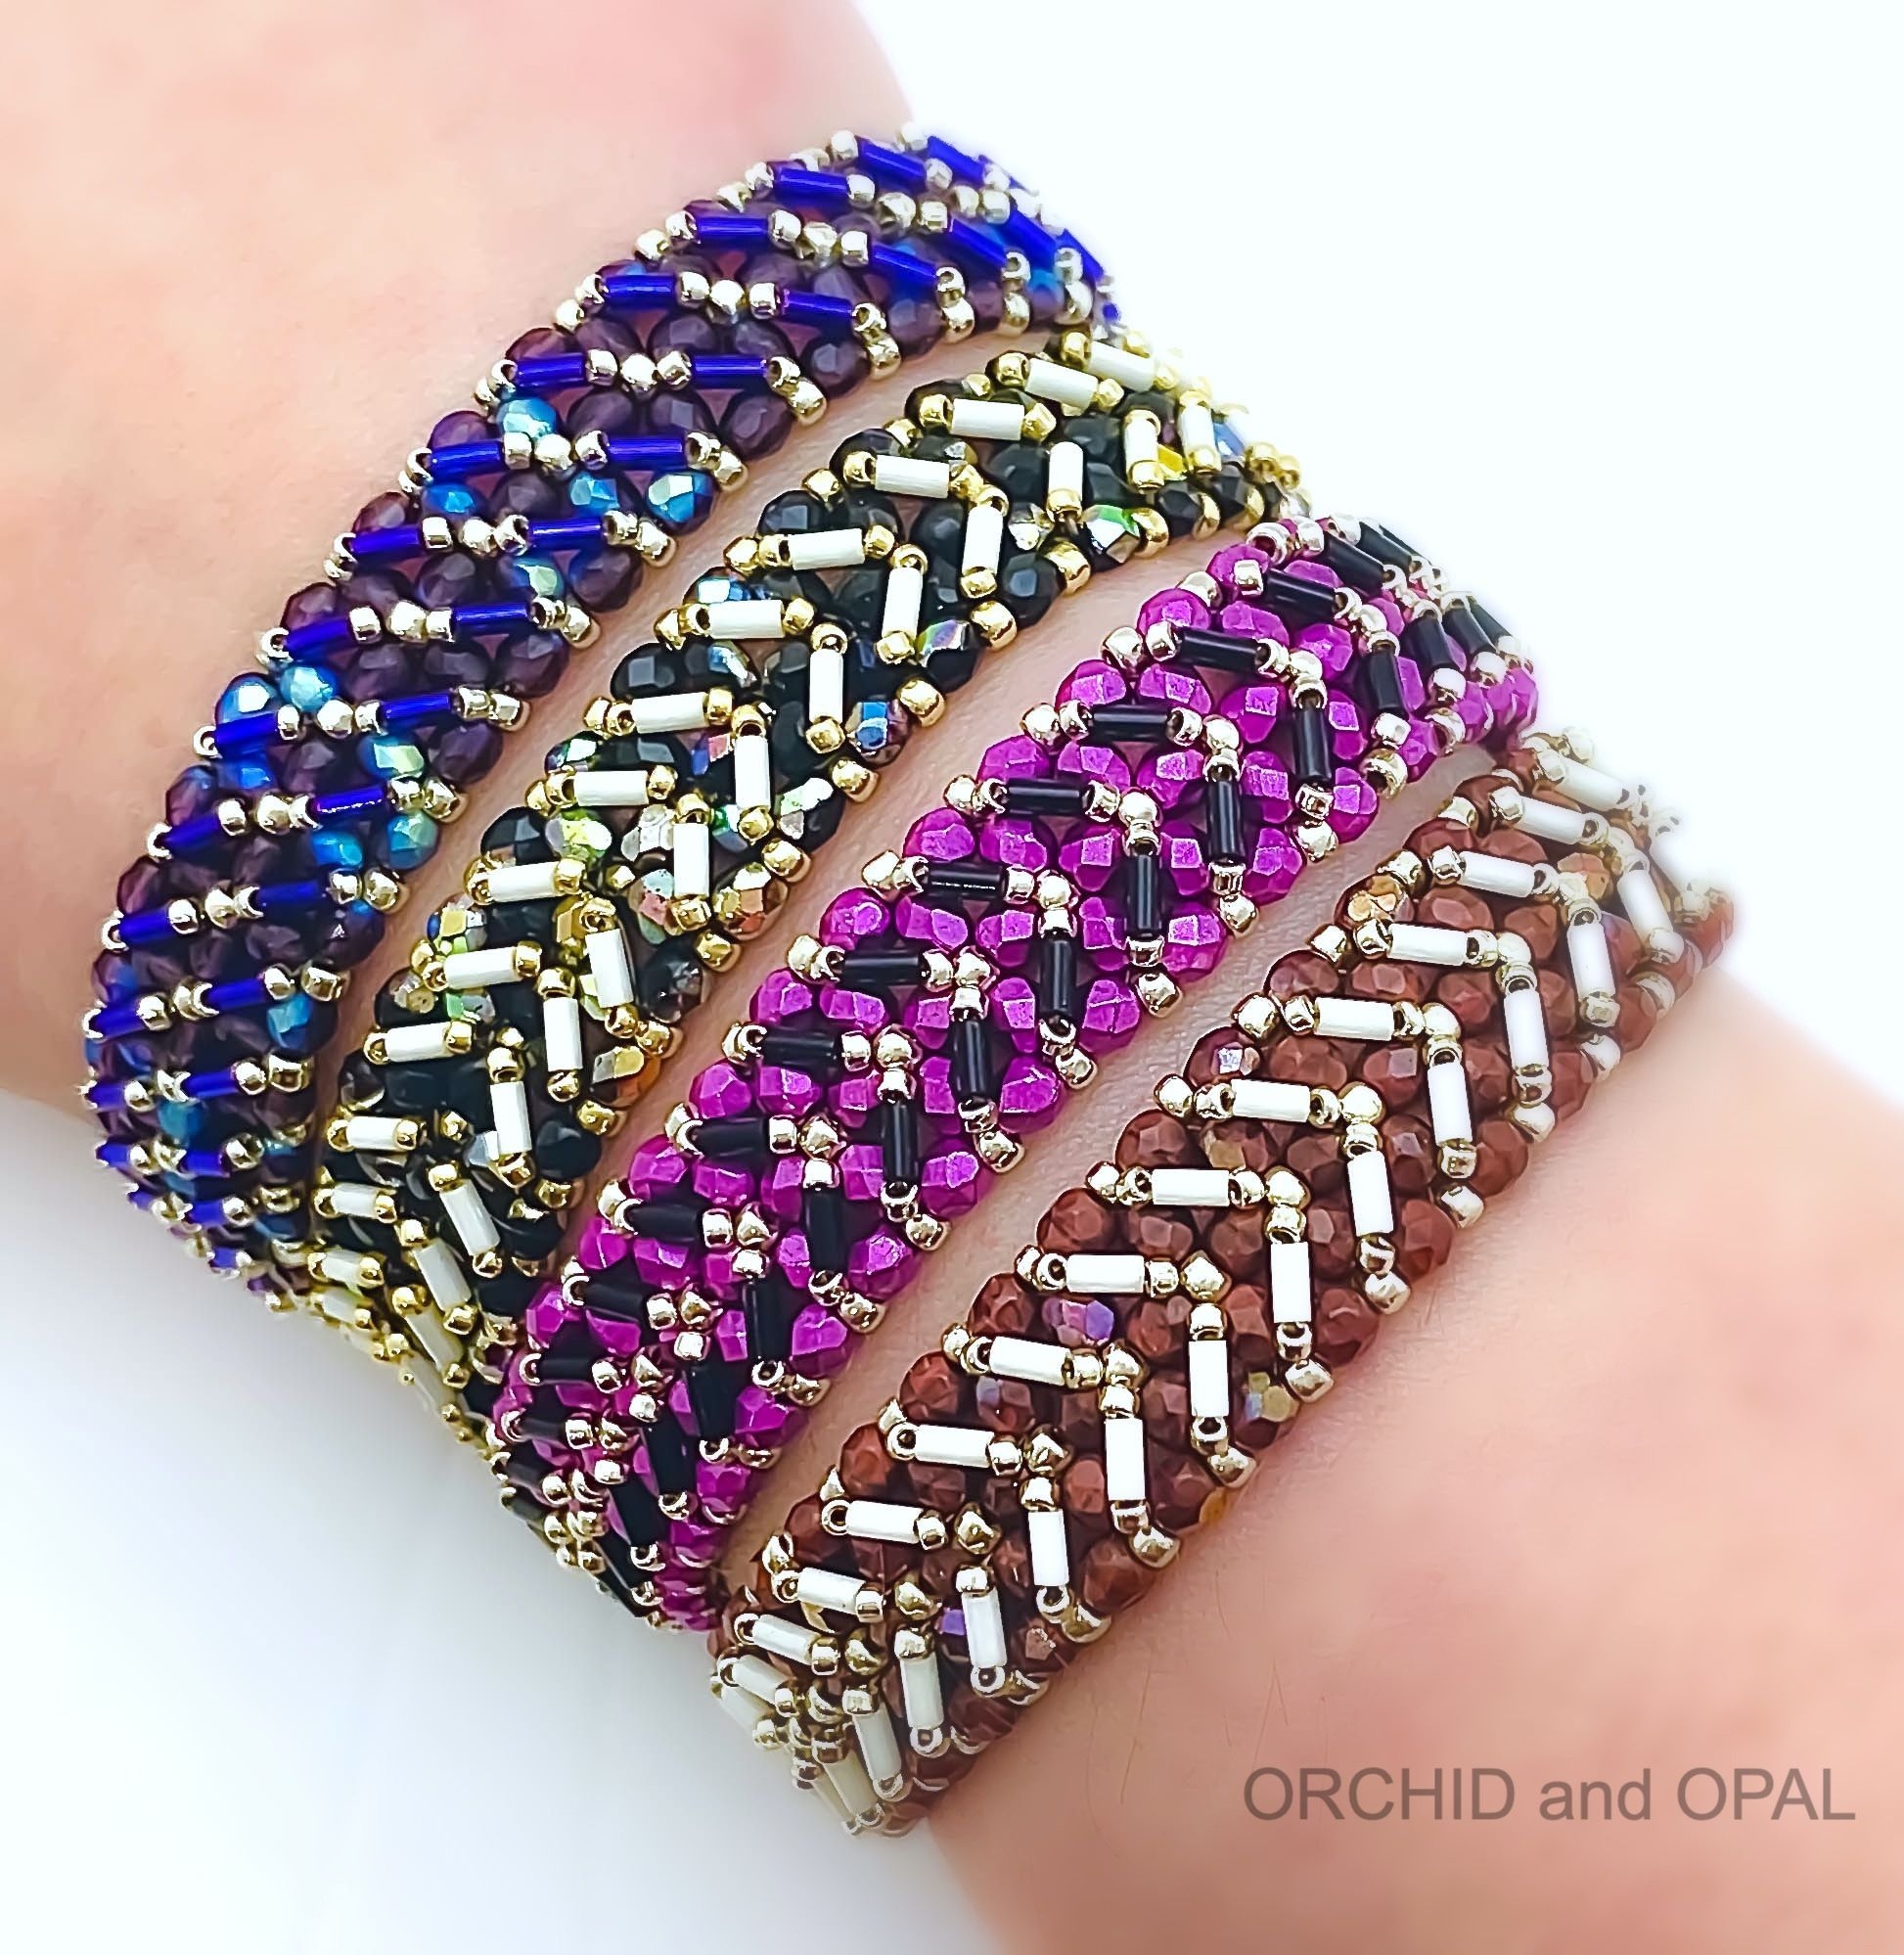 Free Beading Pattern Laces Out Bugle And Seed Bead Bracelet Tutorial By O In 2020 Seed Bead Bracelet Patterns Tutorials Beaded Bracelets Tutorial Bead Woven Bracelet